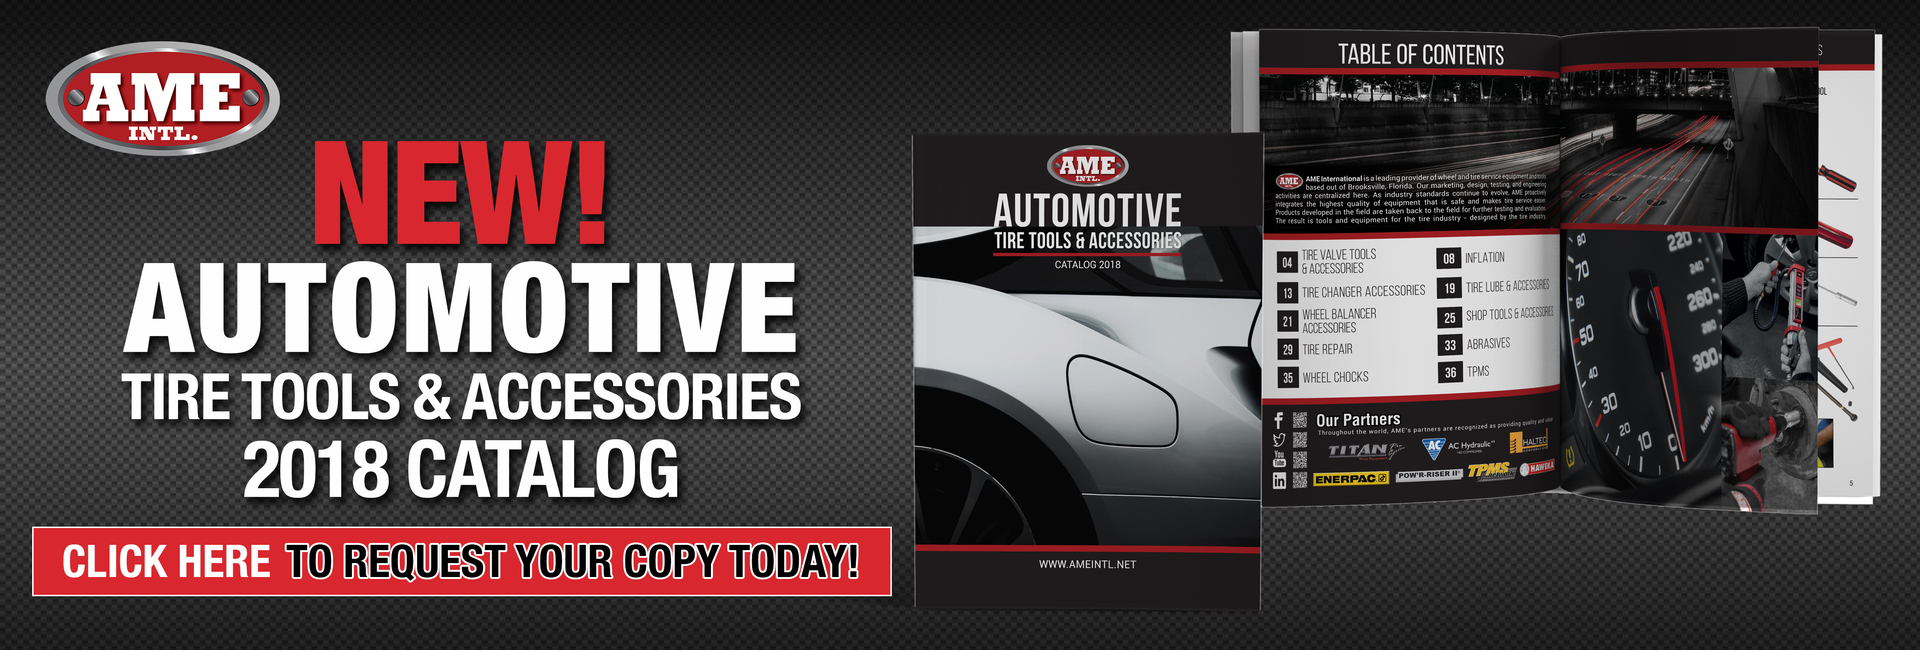 Click Here for your copy of the new 2018 Automotive Catalog!